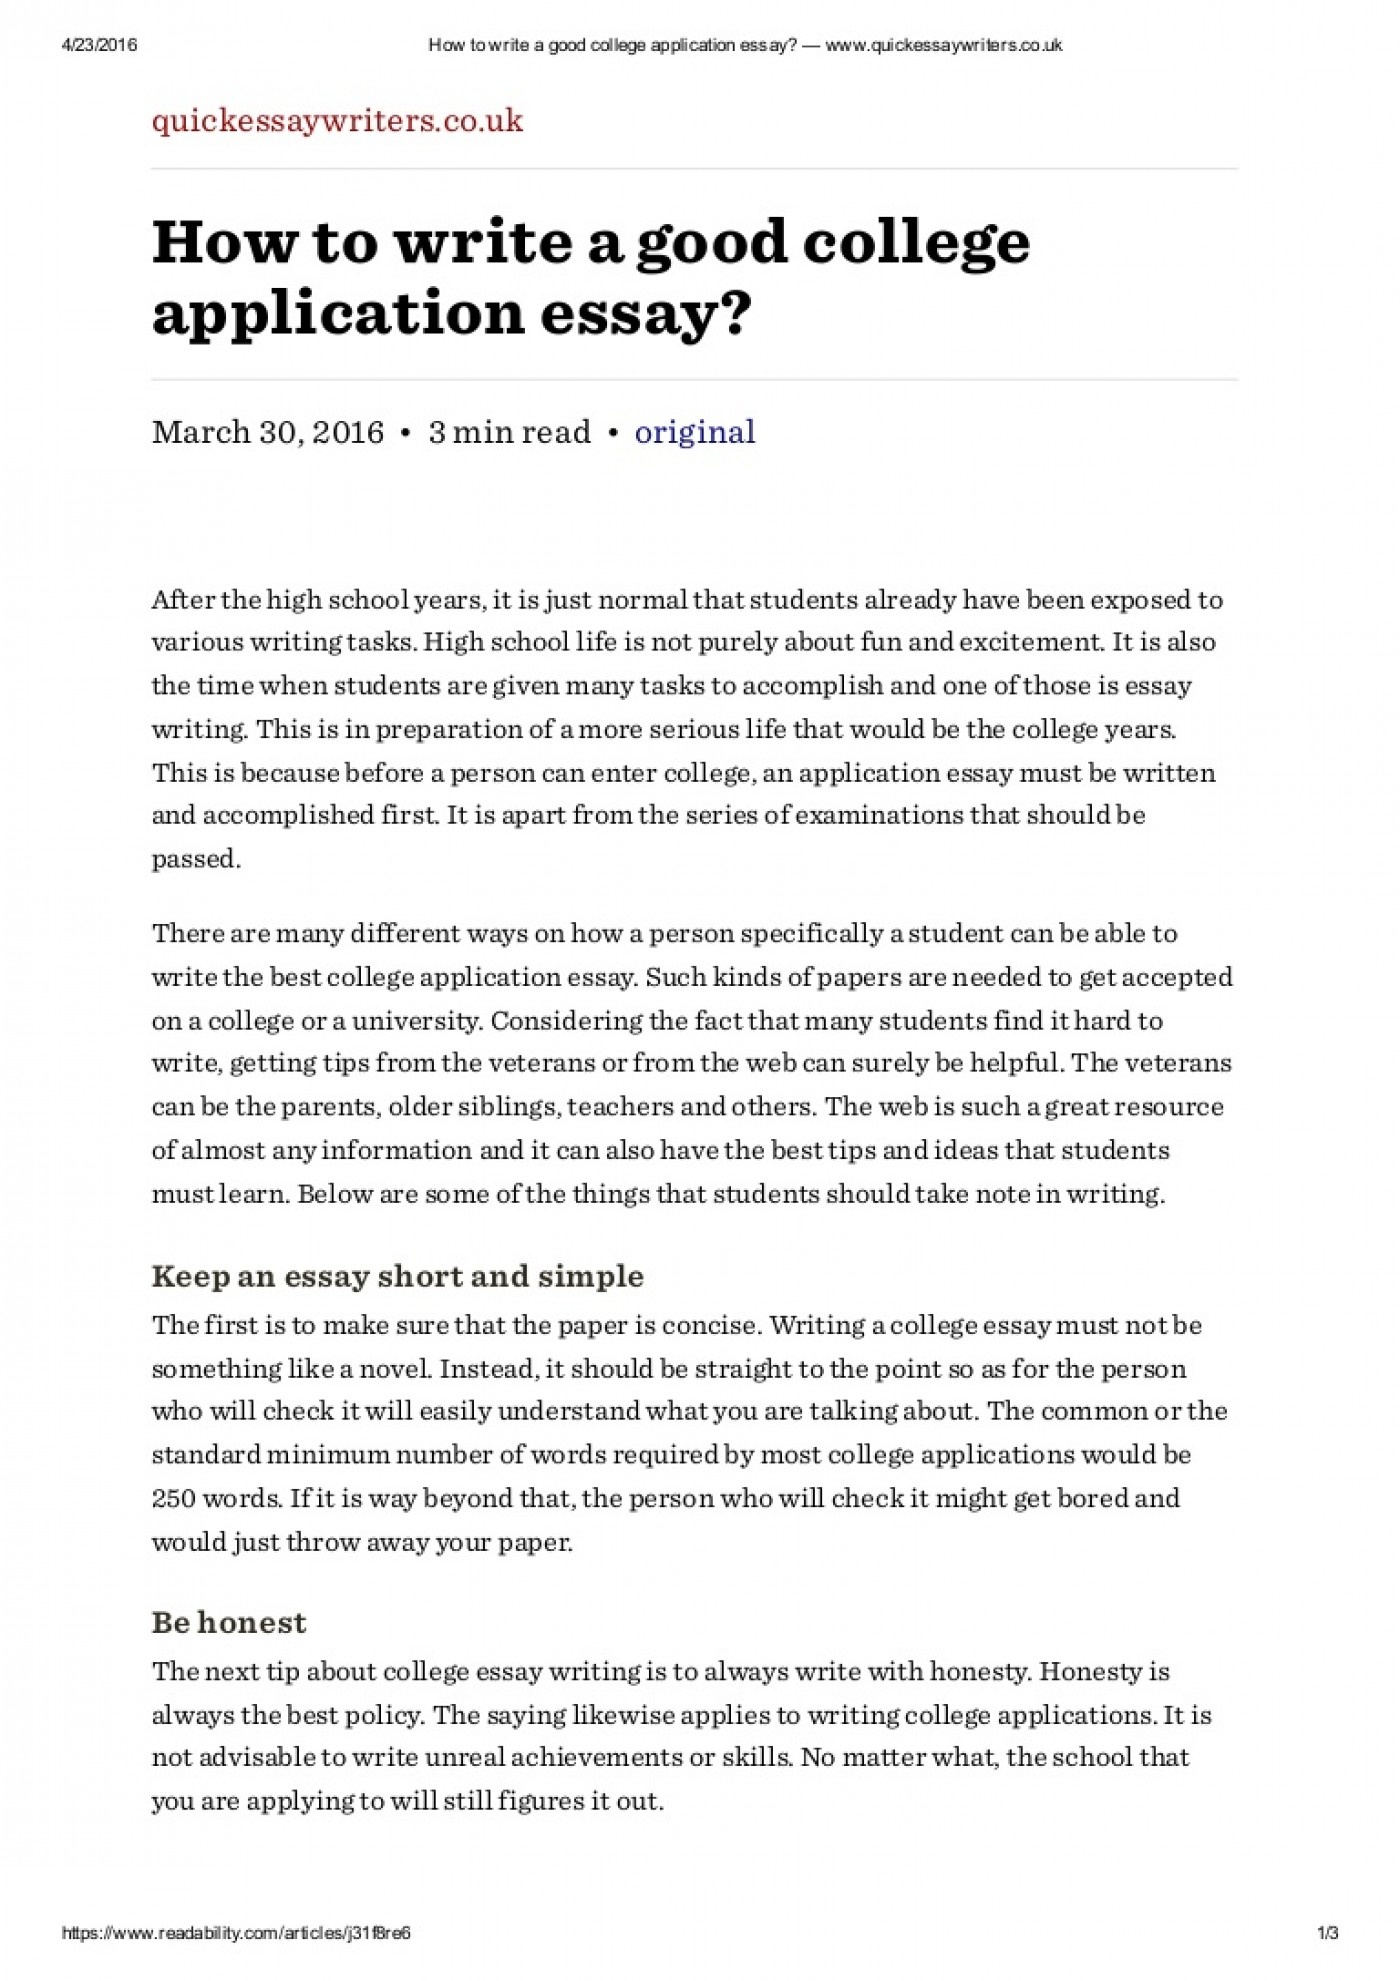 001 Essay Example What Not To Write About In Frightening College Things Your Admissions 1400